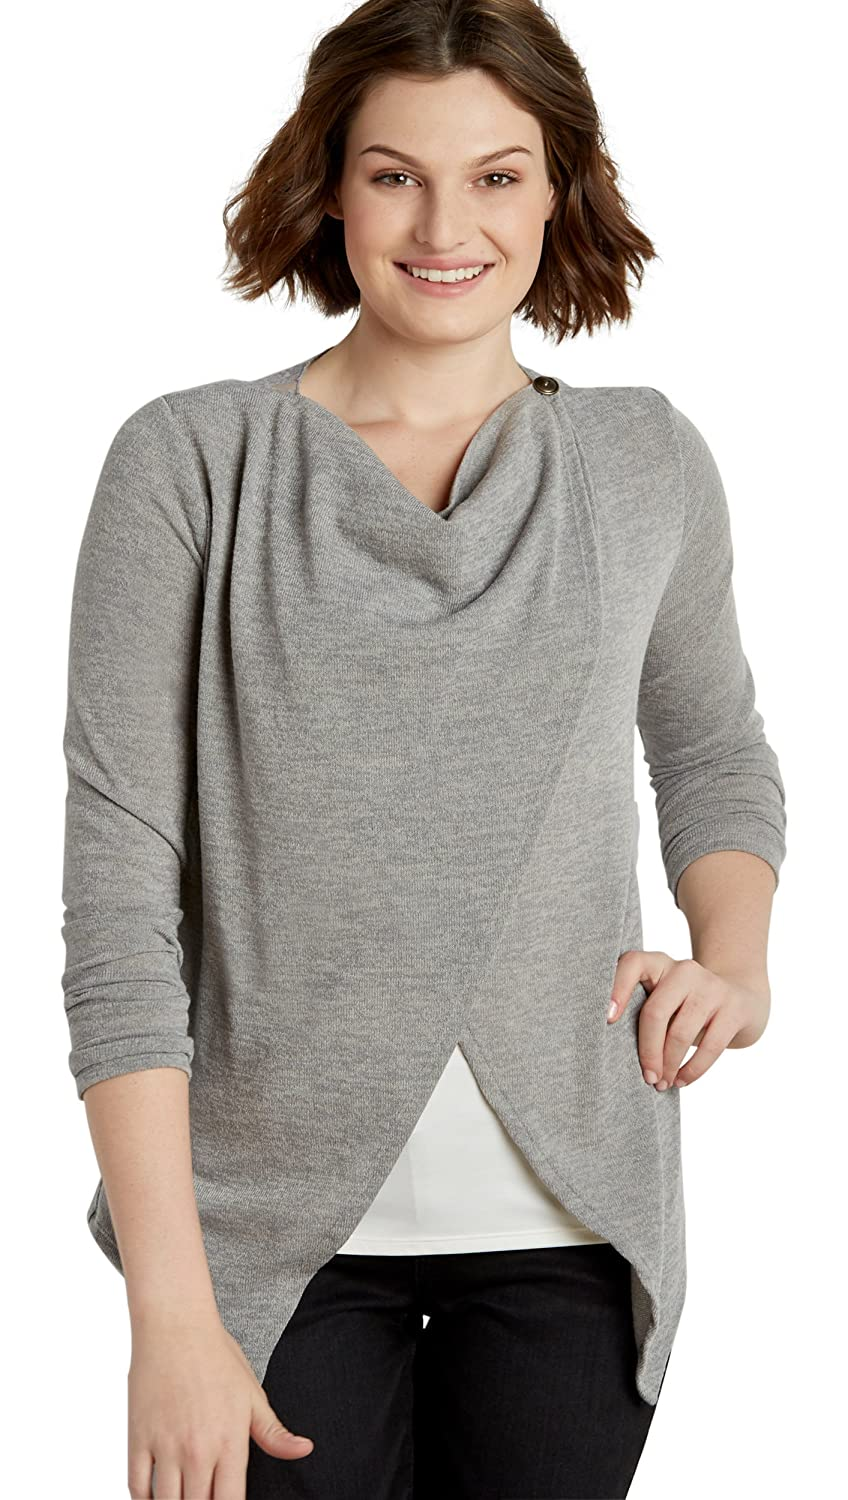 Maurices Women's Asymmetrical Cardigan With Embroidered Mesh Back Yoke